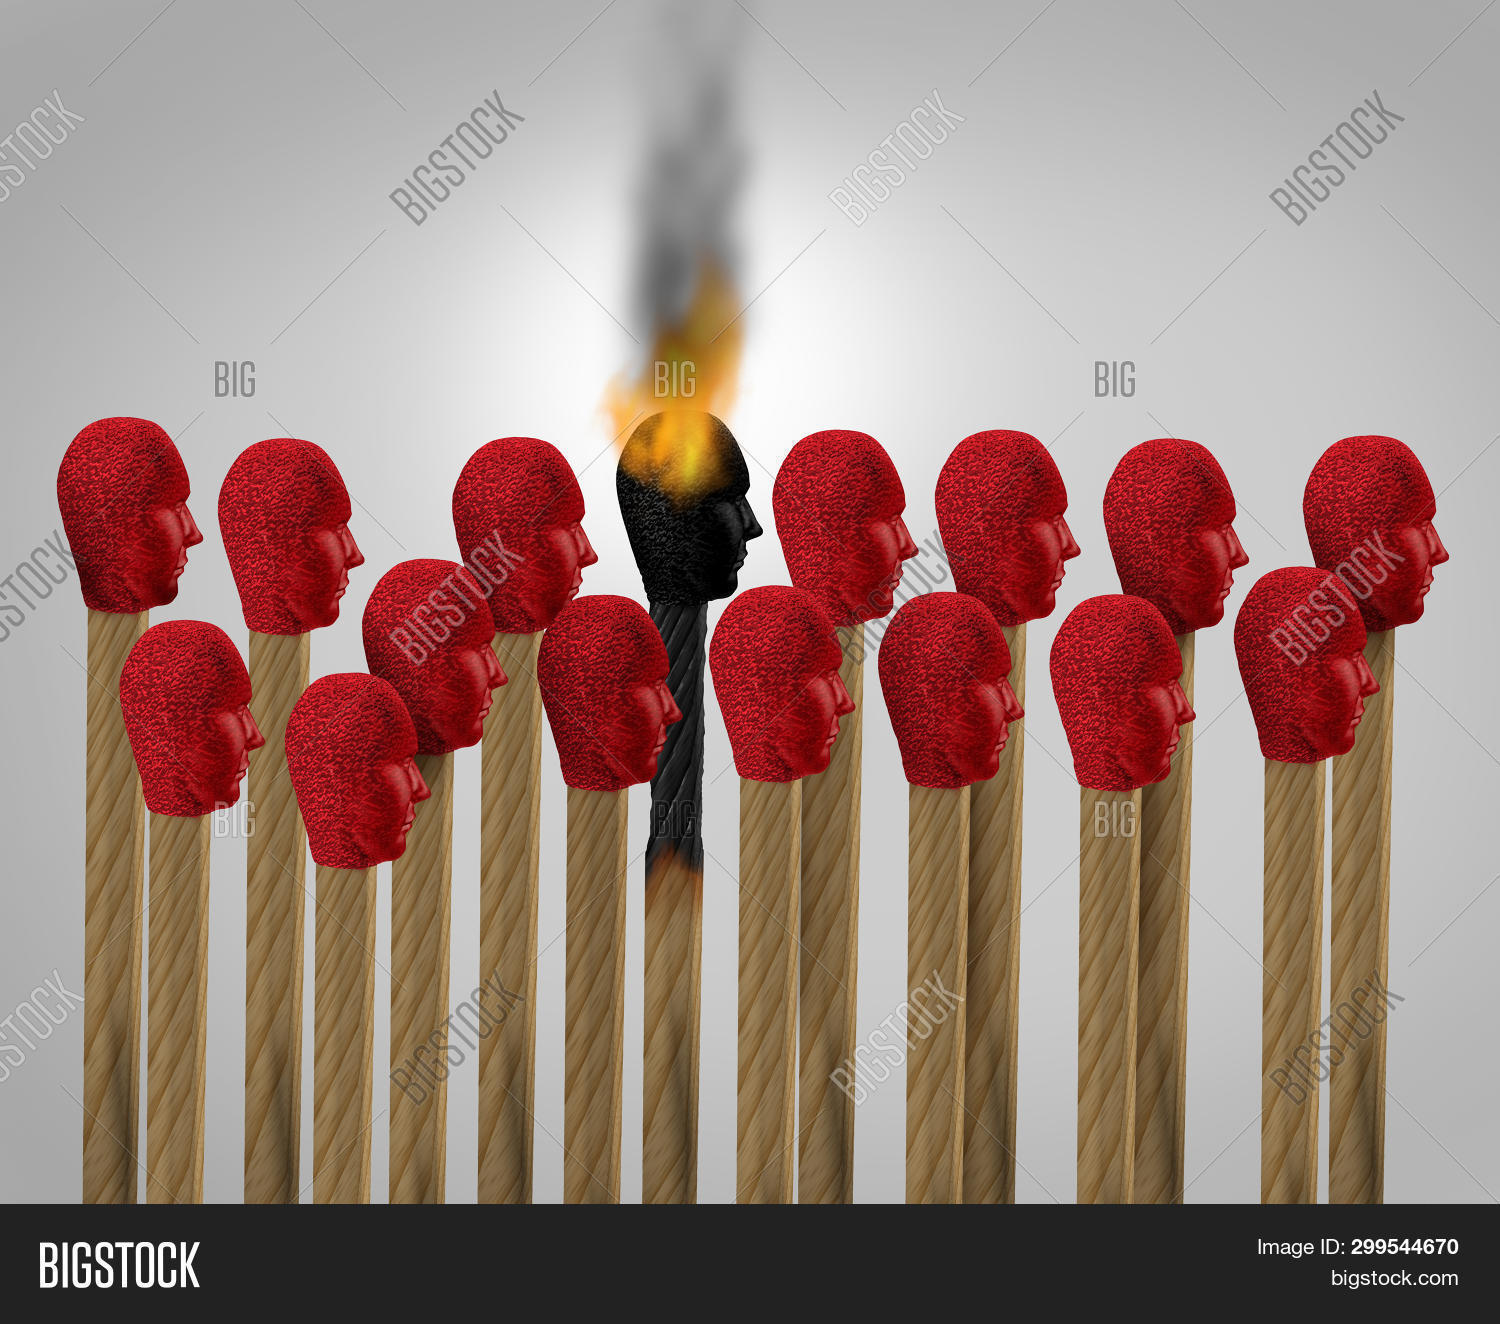 Career Burnout And Business Burn Out As An Overworked Burnt From Exhaustion As A Match Icon Of An Em